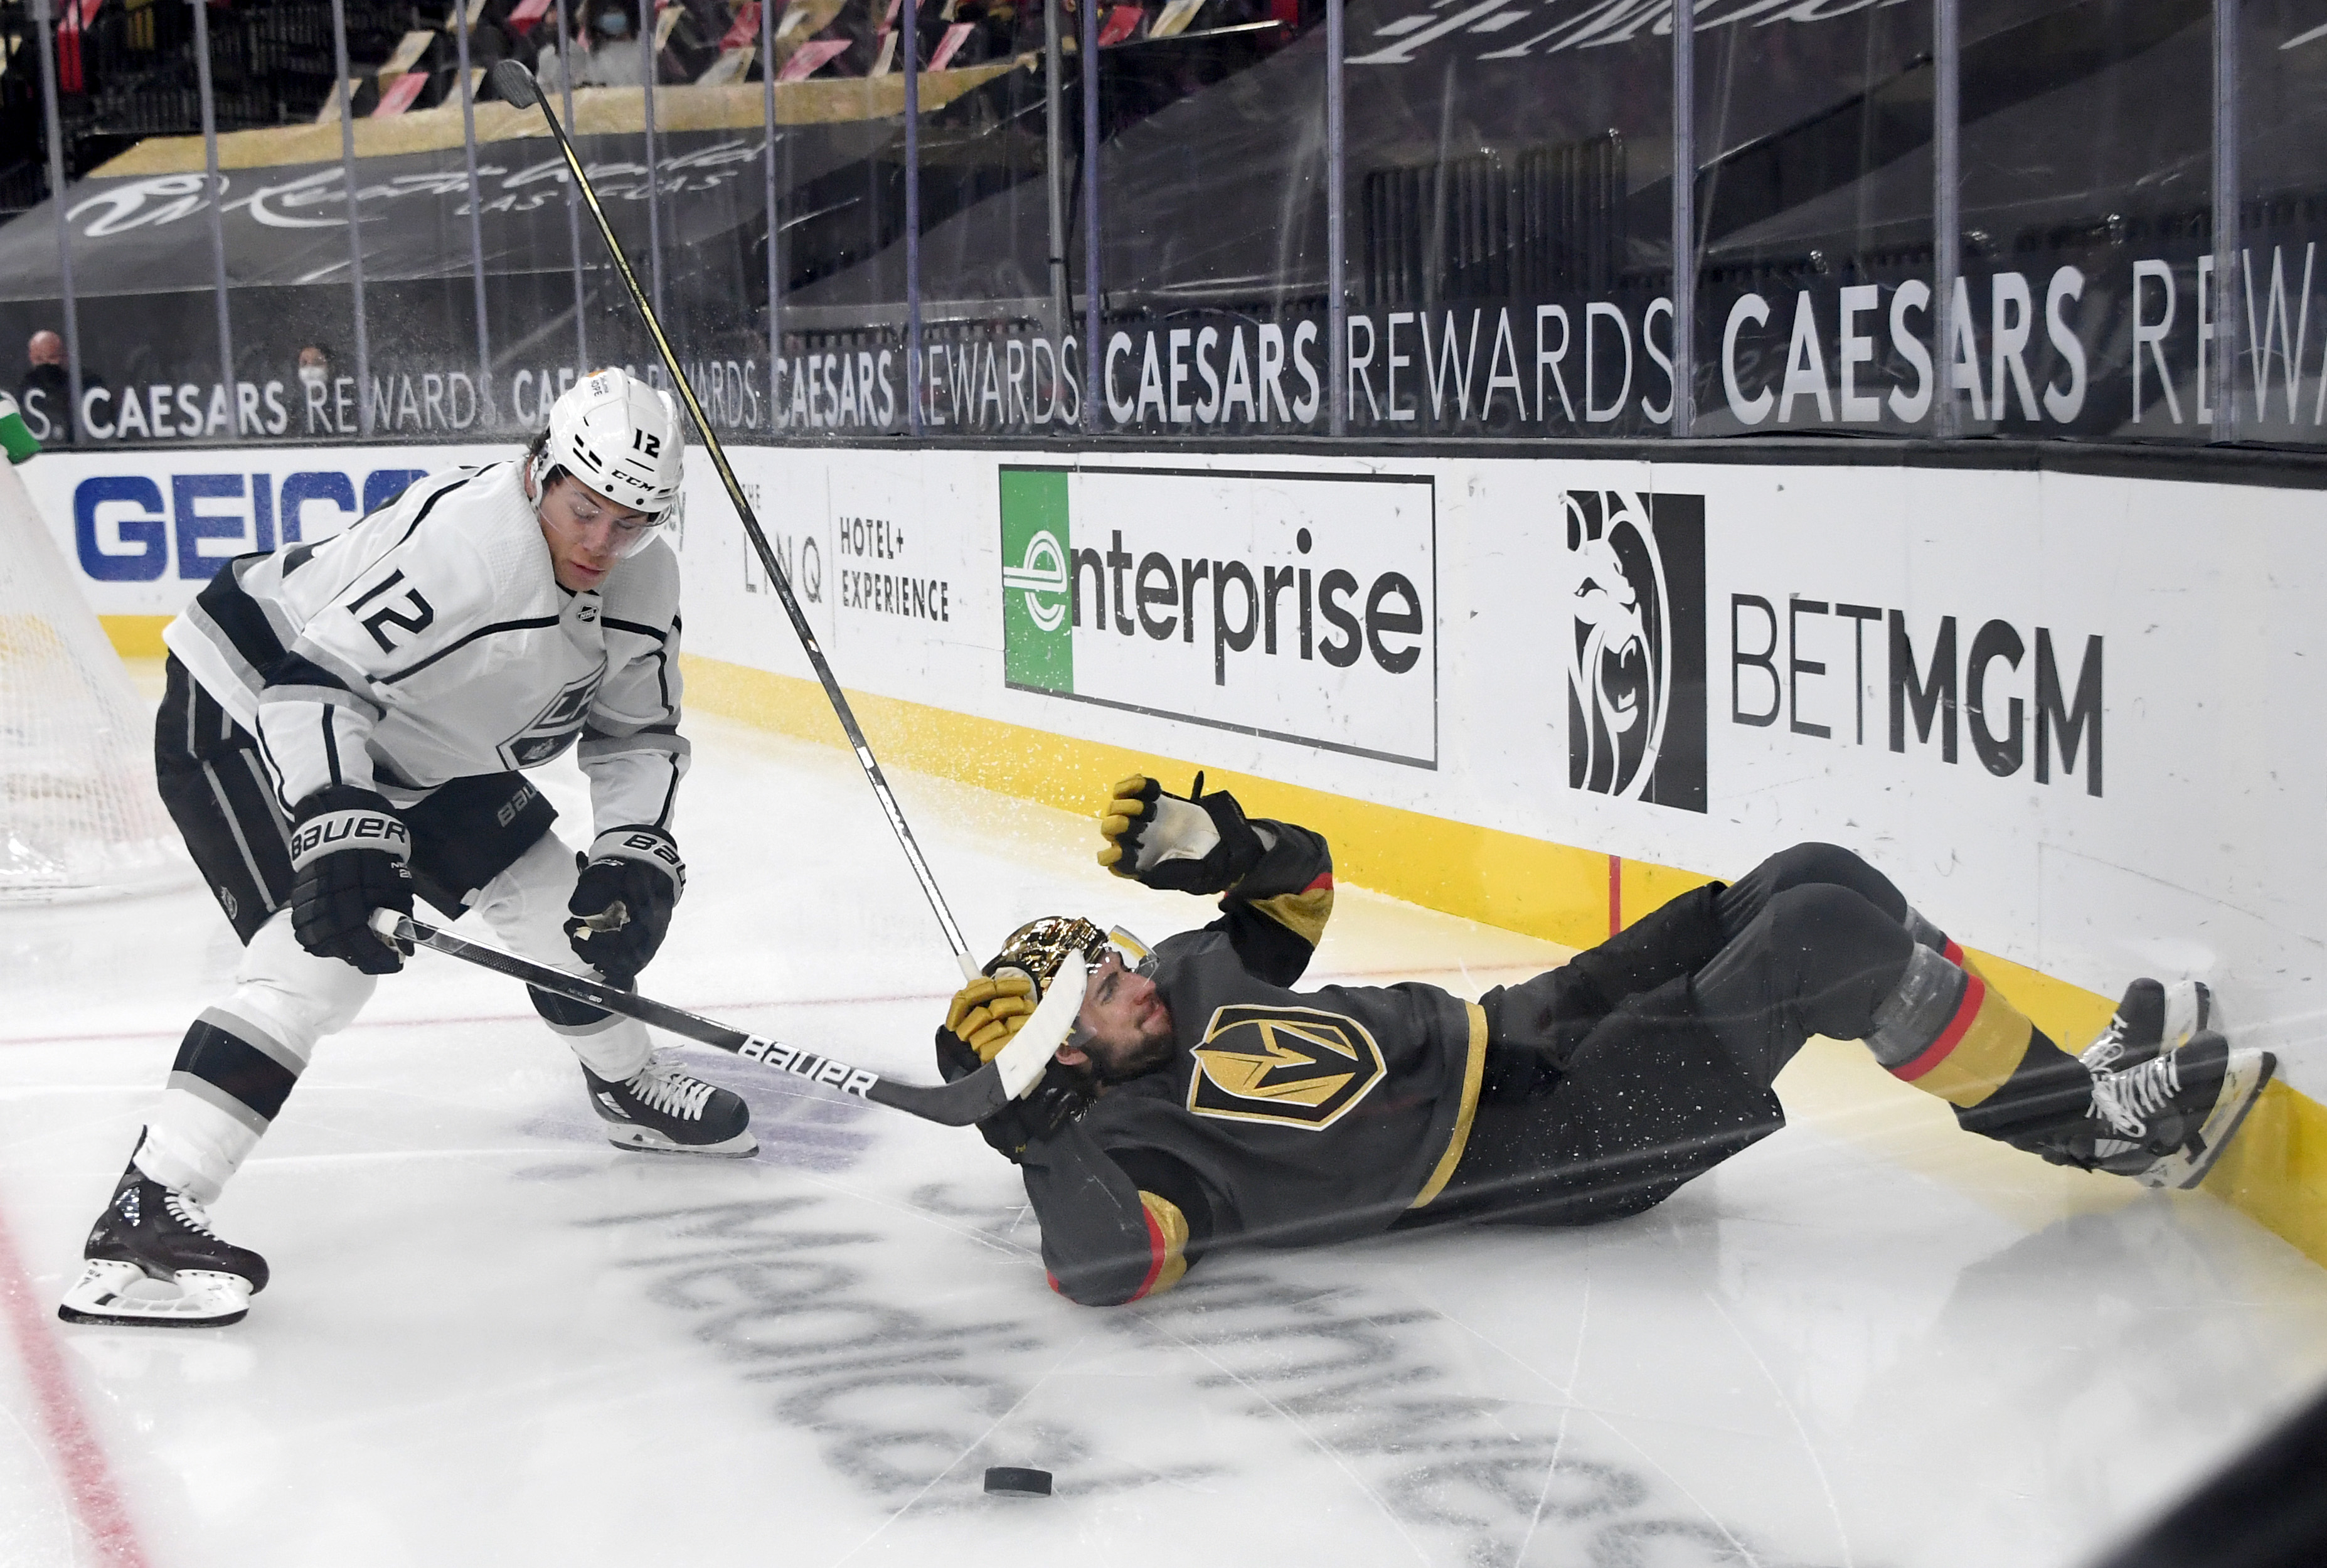 Nicolas Hague #14 of the Vegas Golden Knights falls as he and Trevor Moore #12 of the Los Angeles Kings go after the puck in the third period of their game at T-Mobile Arena on March 29, 2021 in Las Vegas, Nevada. The Golden Knights defeated the Kings 4-1.